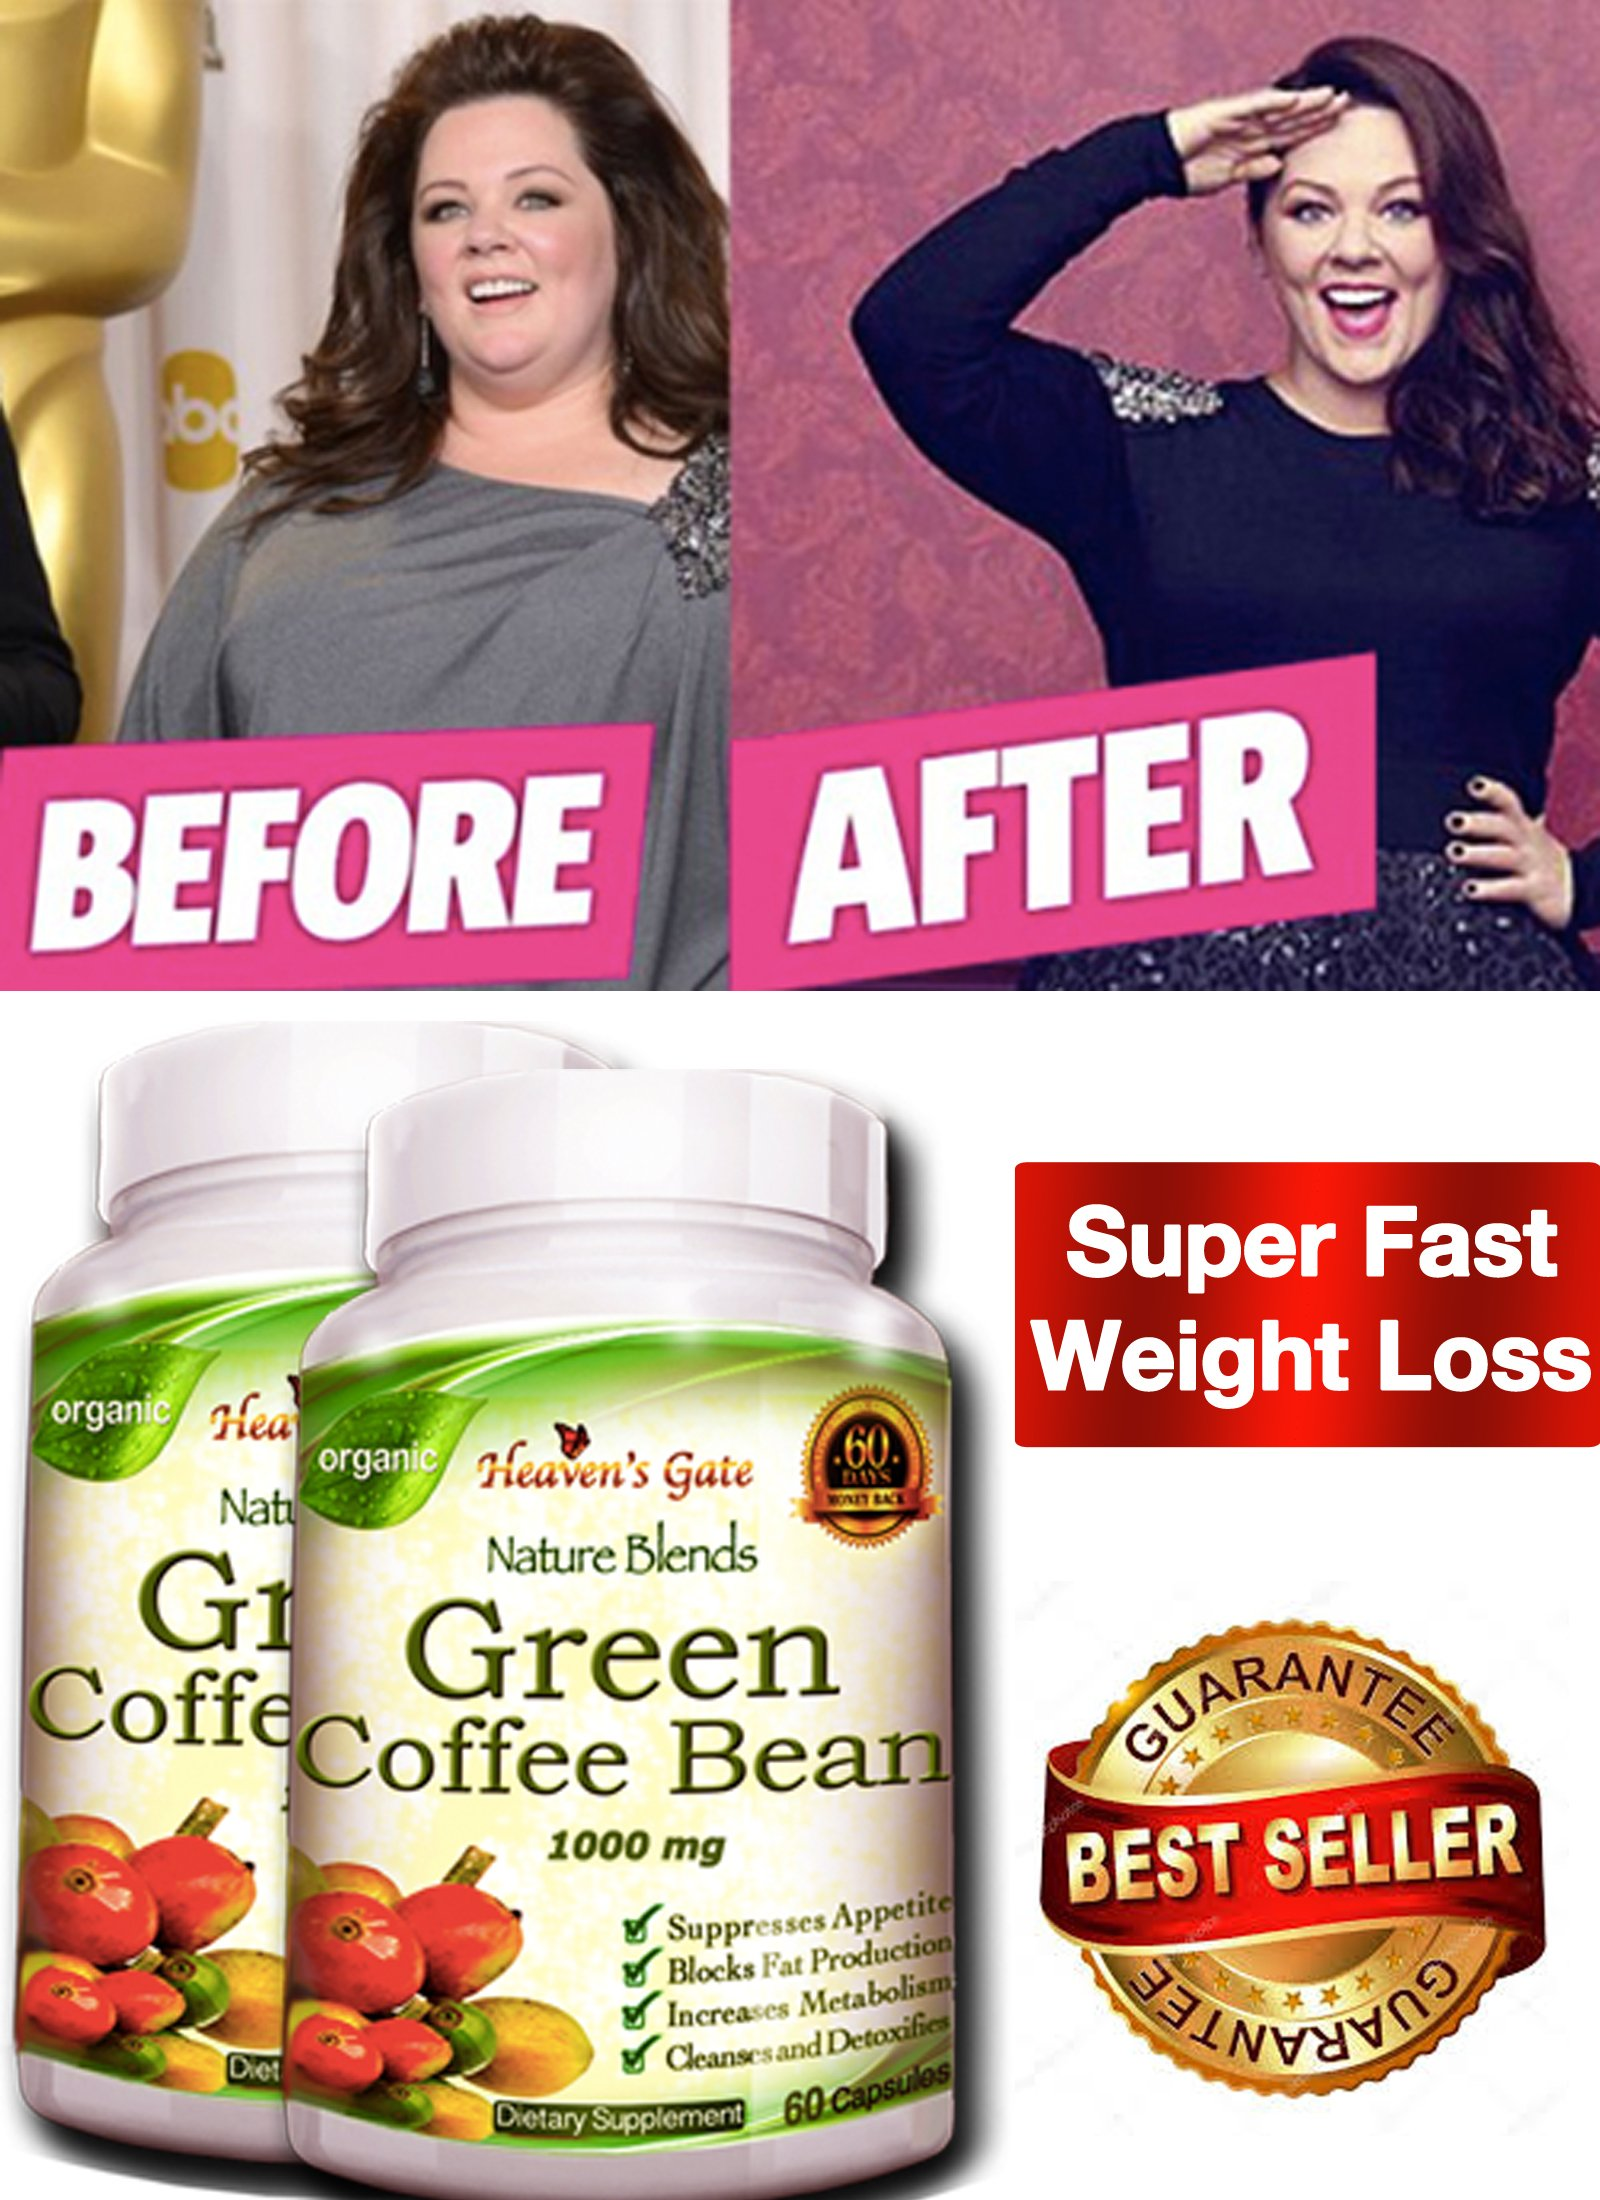 100% Pure Green Coffee Bean Extract - 120 Capsules - Max Strength Natural GCA Antioxidant Cleanse for Weight Loss, 1000mg w/ 50% Chlorogenic Acid per Pill, 1600mg Daily Supplement, Healthy...